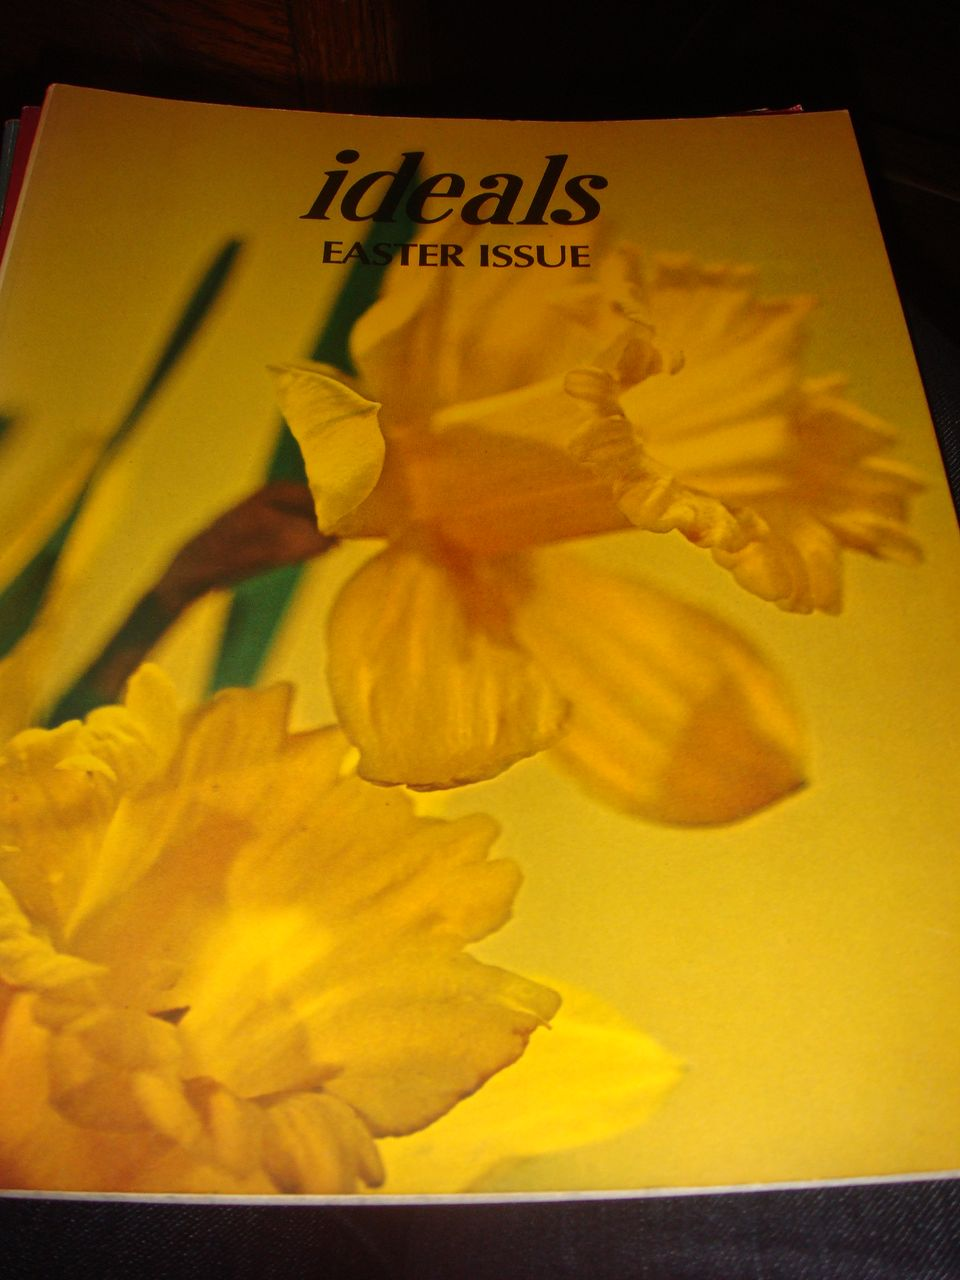 1975 IDEALS Magazine: Easter Issue Volume 32